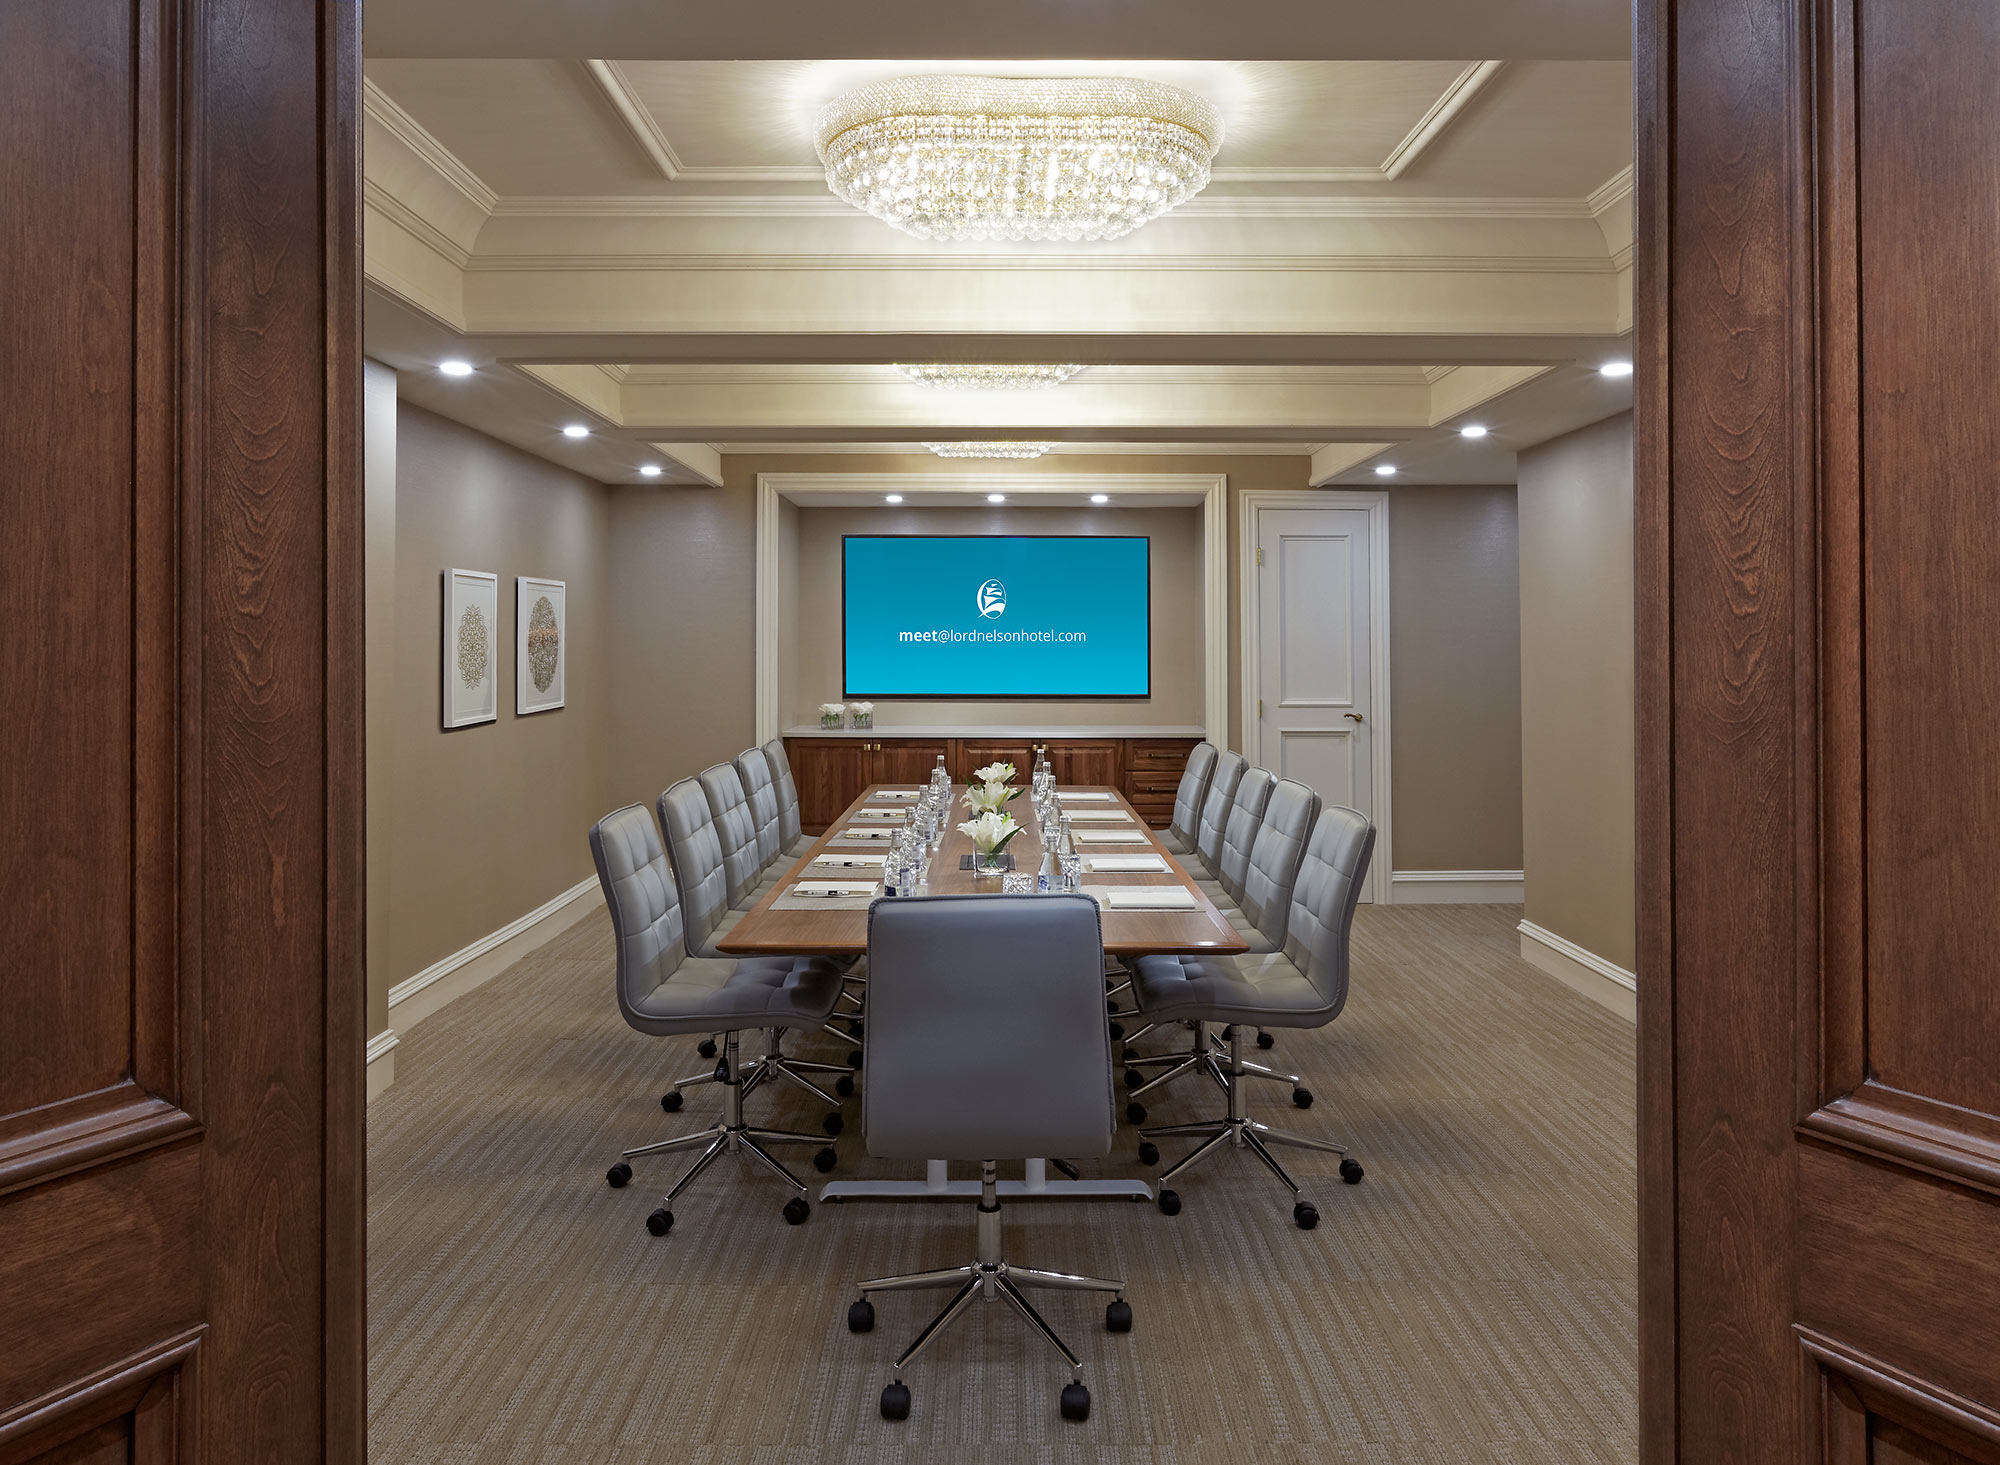 interior-design-hotel-halifax-meeting-room.jpg